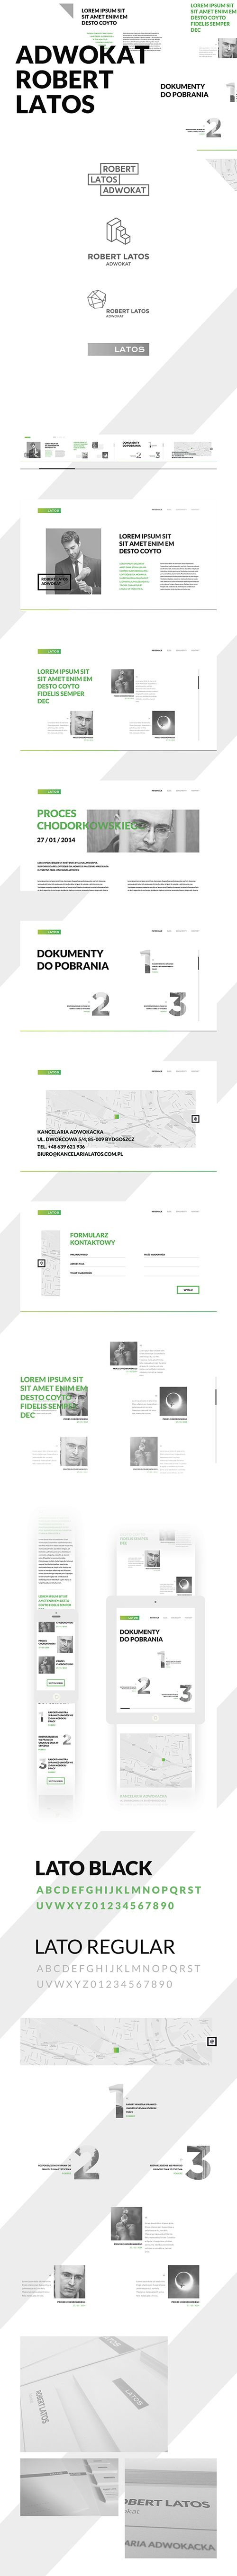 Website and branding for lawyer.